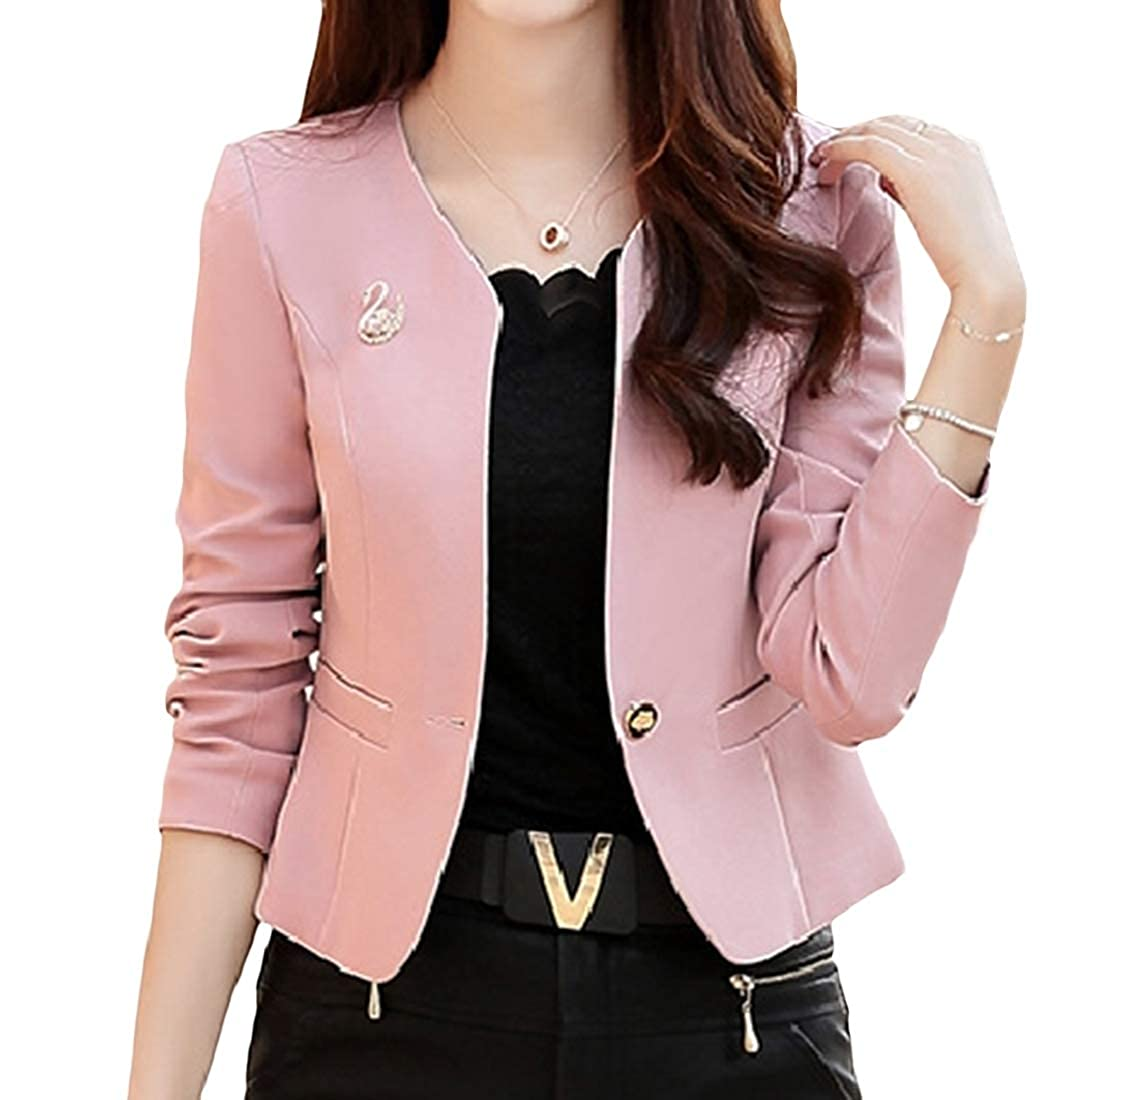 YUNY Women Round Neck Fashion Office Work Elegant Slim Fitted OL Business Suit 1 XL